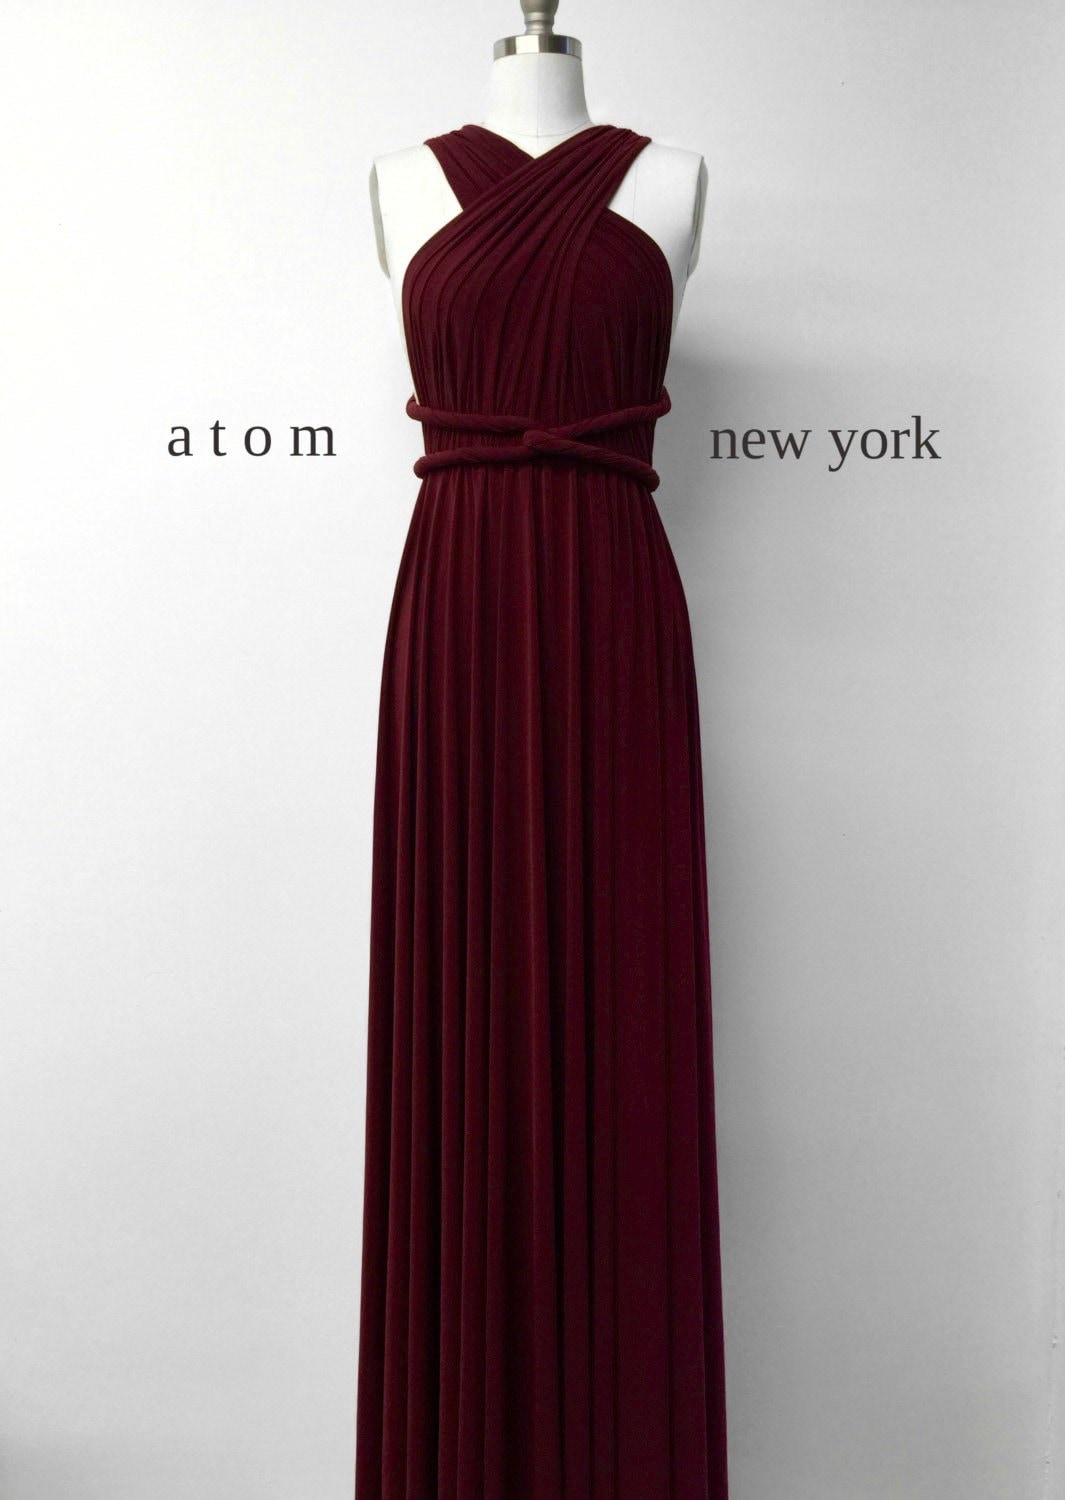 Infinity bridesmaid dresses made in new york city by atomattire burgundy wine red long floor length ball gown infinity dress convertible formal multiway wrap dress bridesmaid ombrellifo Choice Image